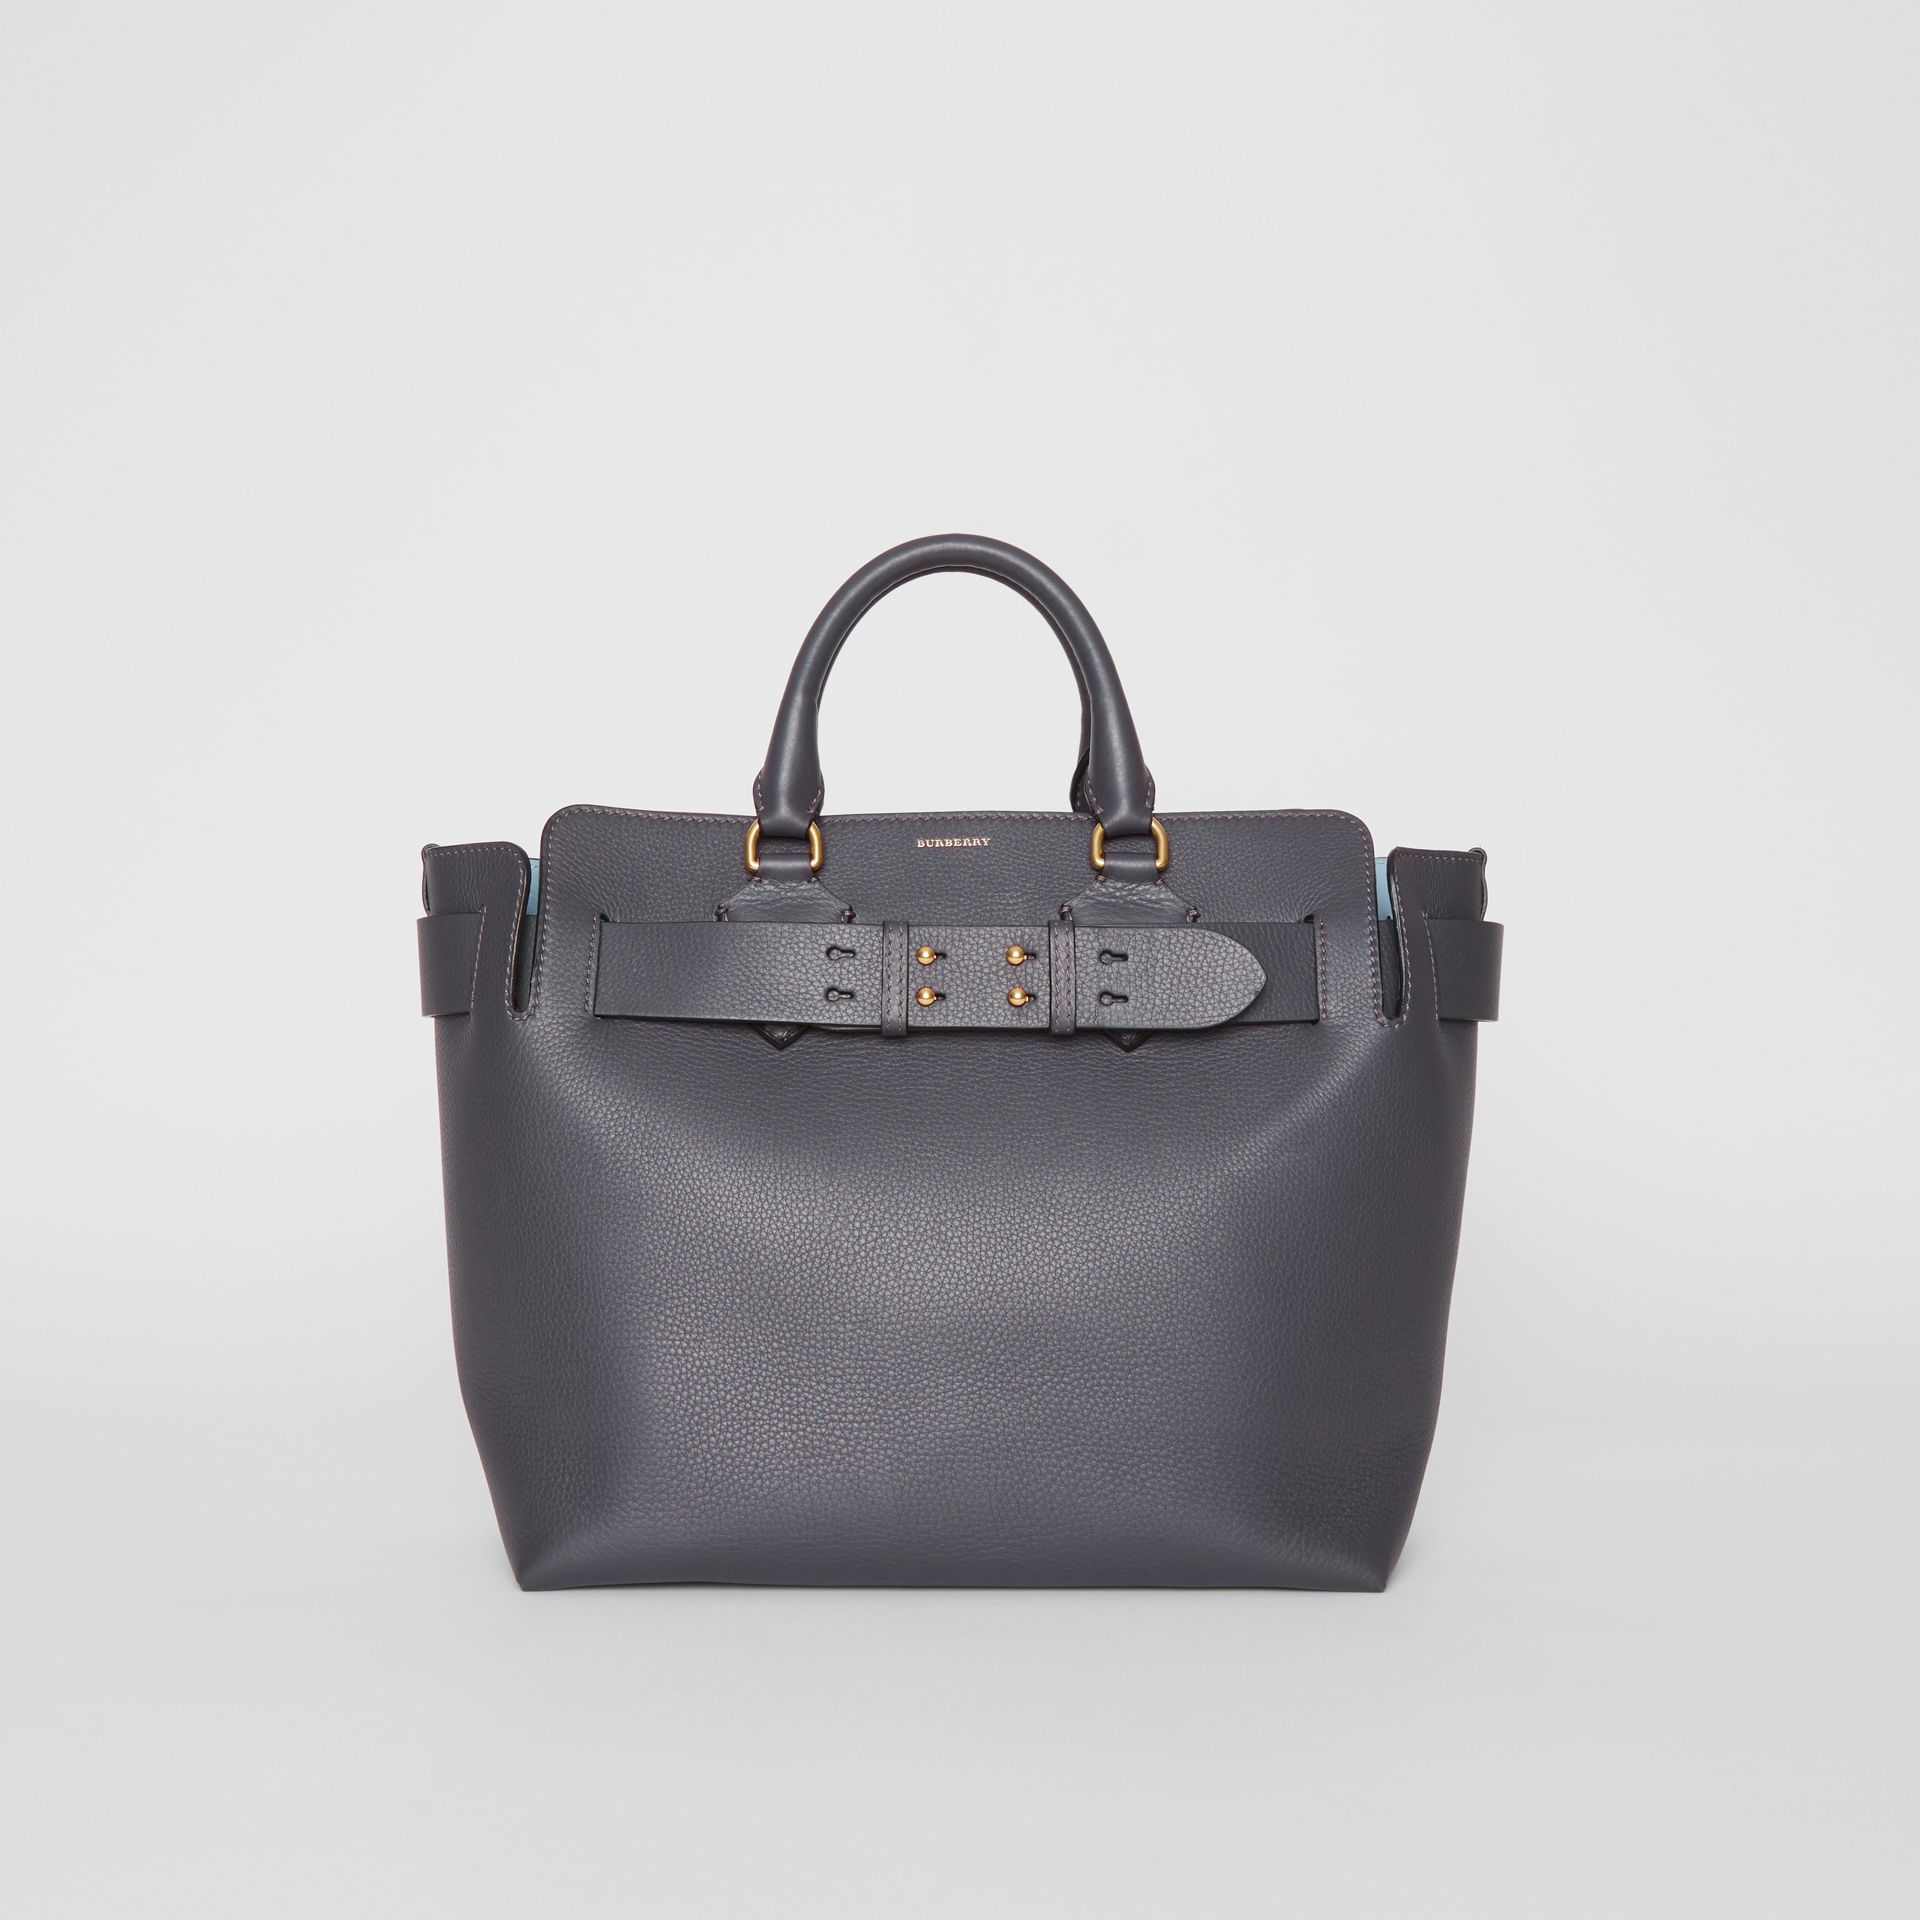 Sac The Belt moyen en cuir (Gris Anthracite) - Femme | Burberry - photo de la galerie 0